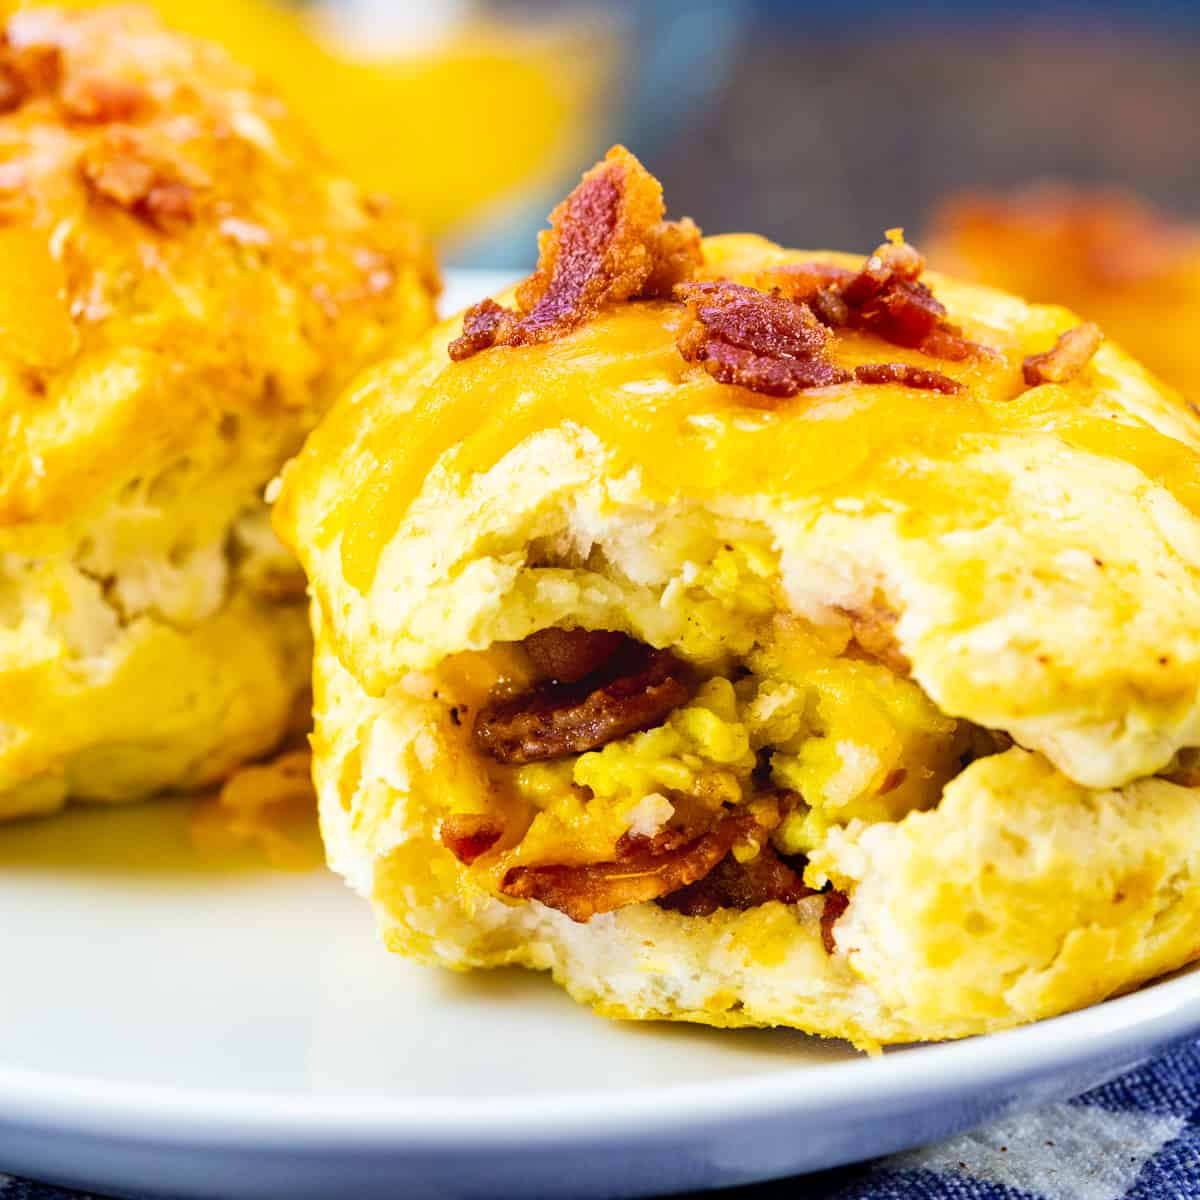 Air Fryer Bacon Egg & Cheese Biscuits Bombs with bite bitten to show inside.